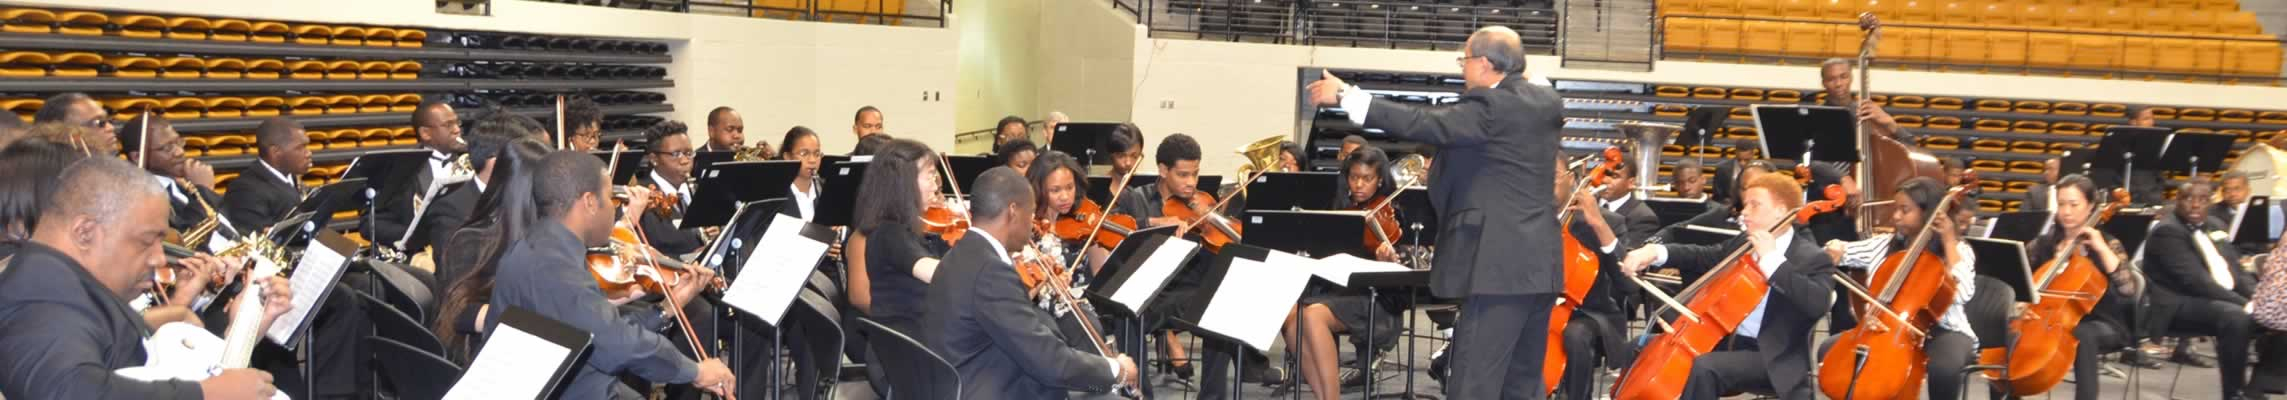 Grambling State University - Orchestra intended for Grambling State University Orchestra Calendar